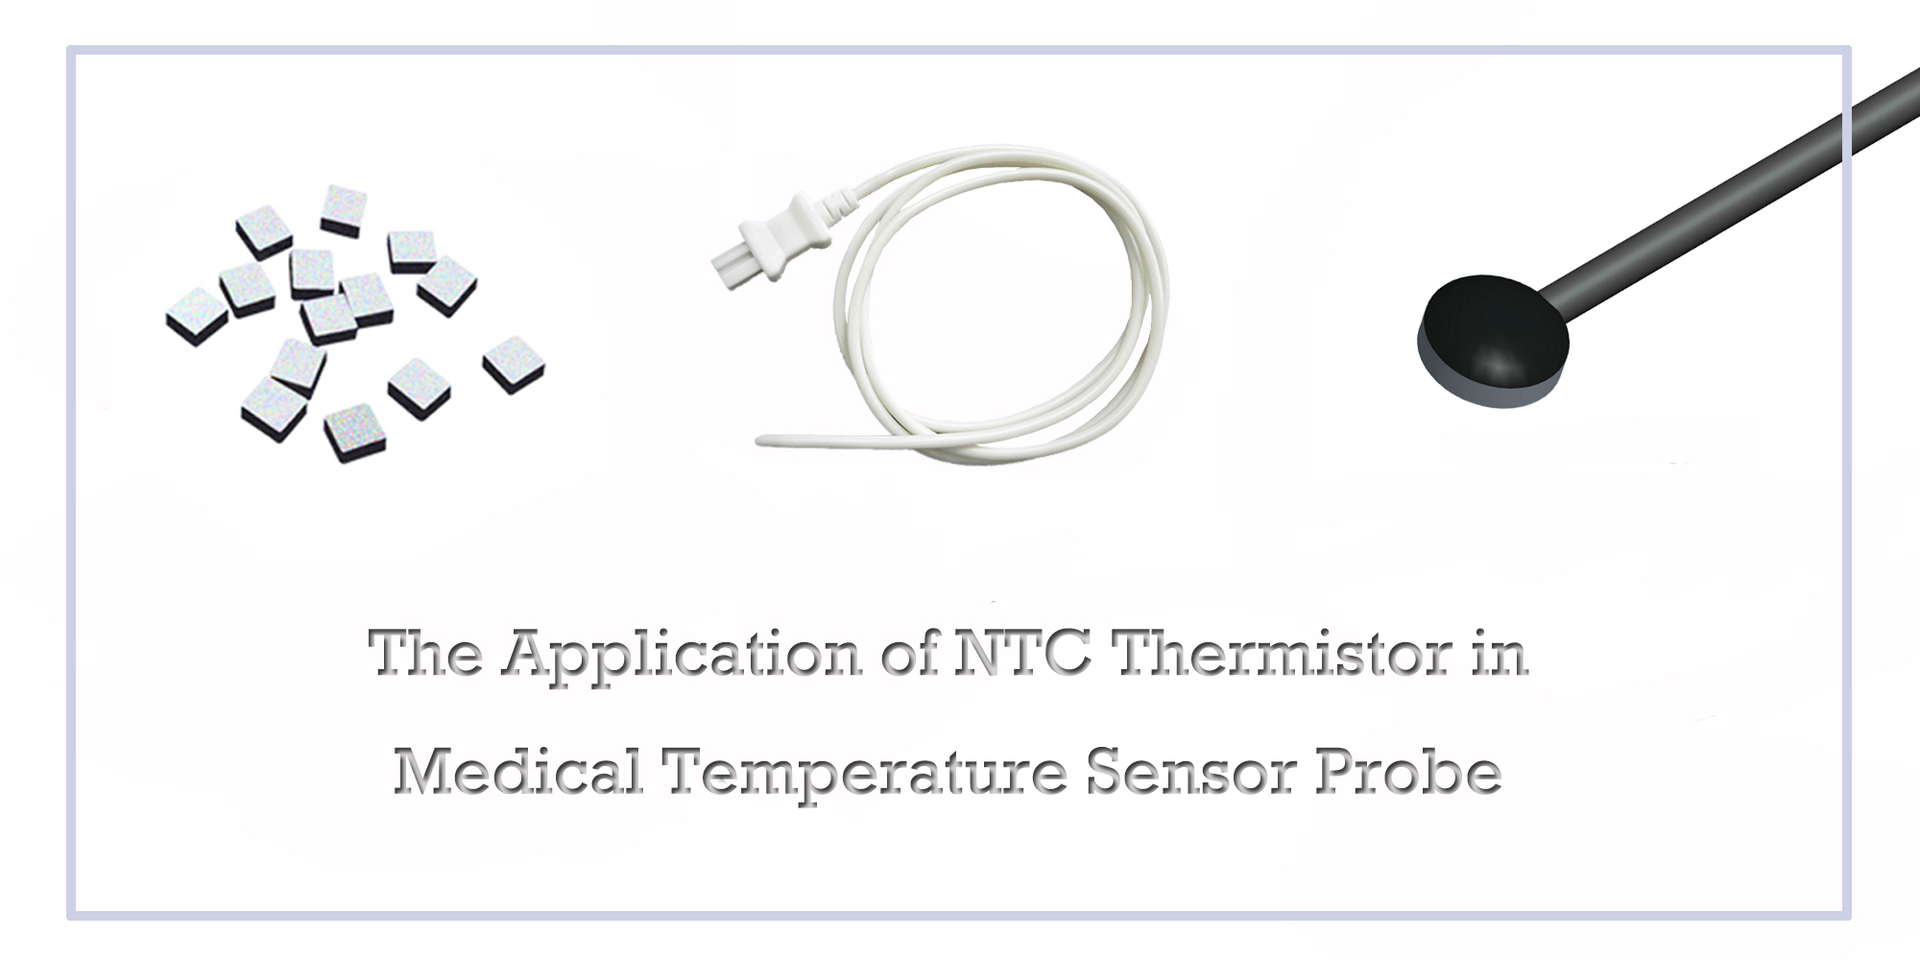 The Application of NTC Thermistor in Medical Temperature Sensor Probe